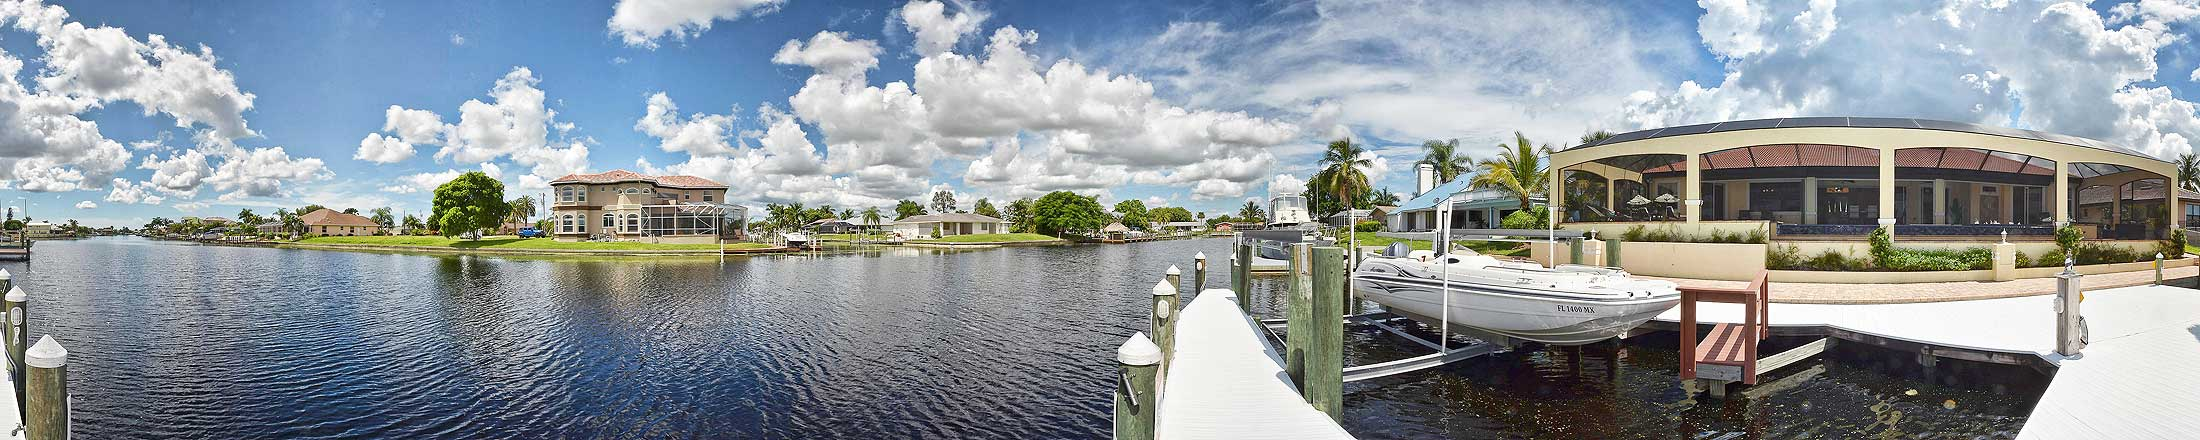 Vacation rentals in Cape Coral